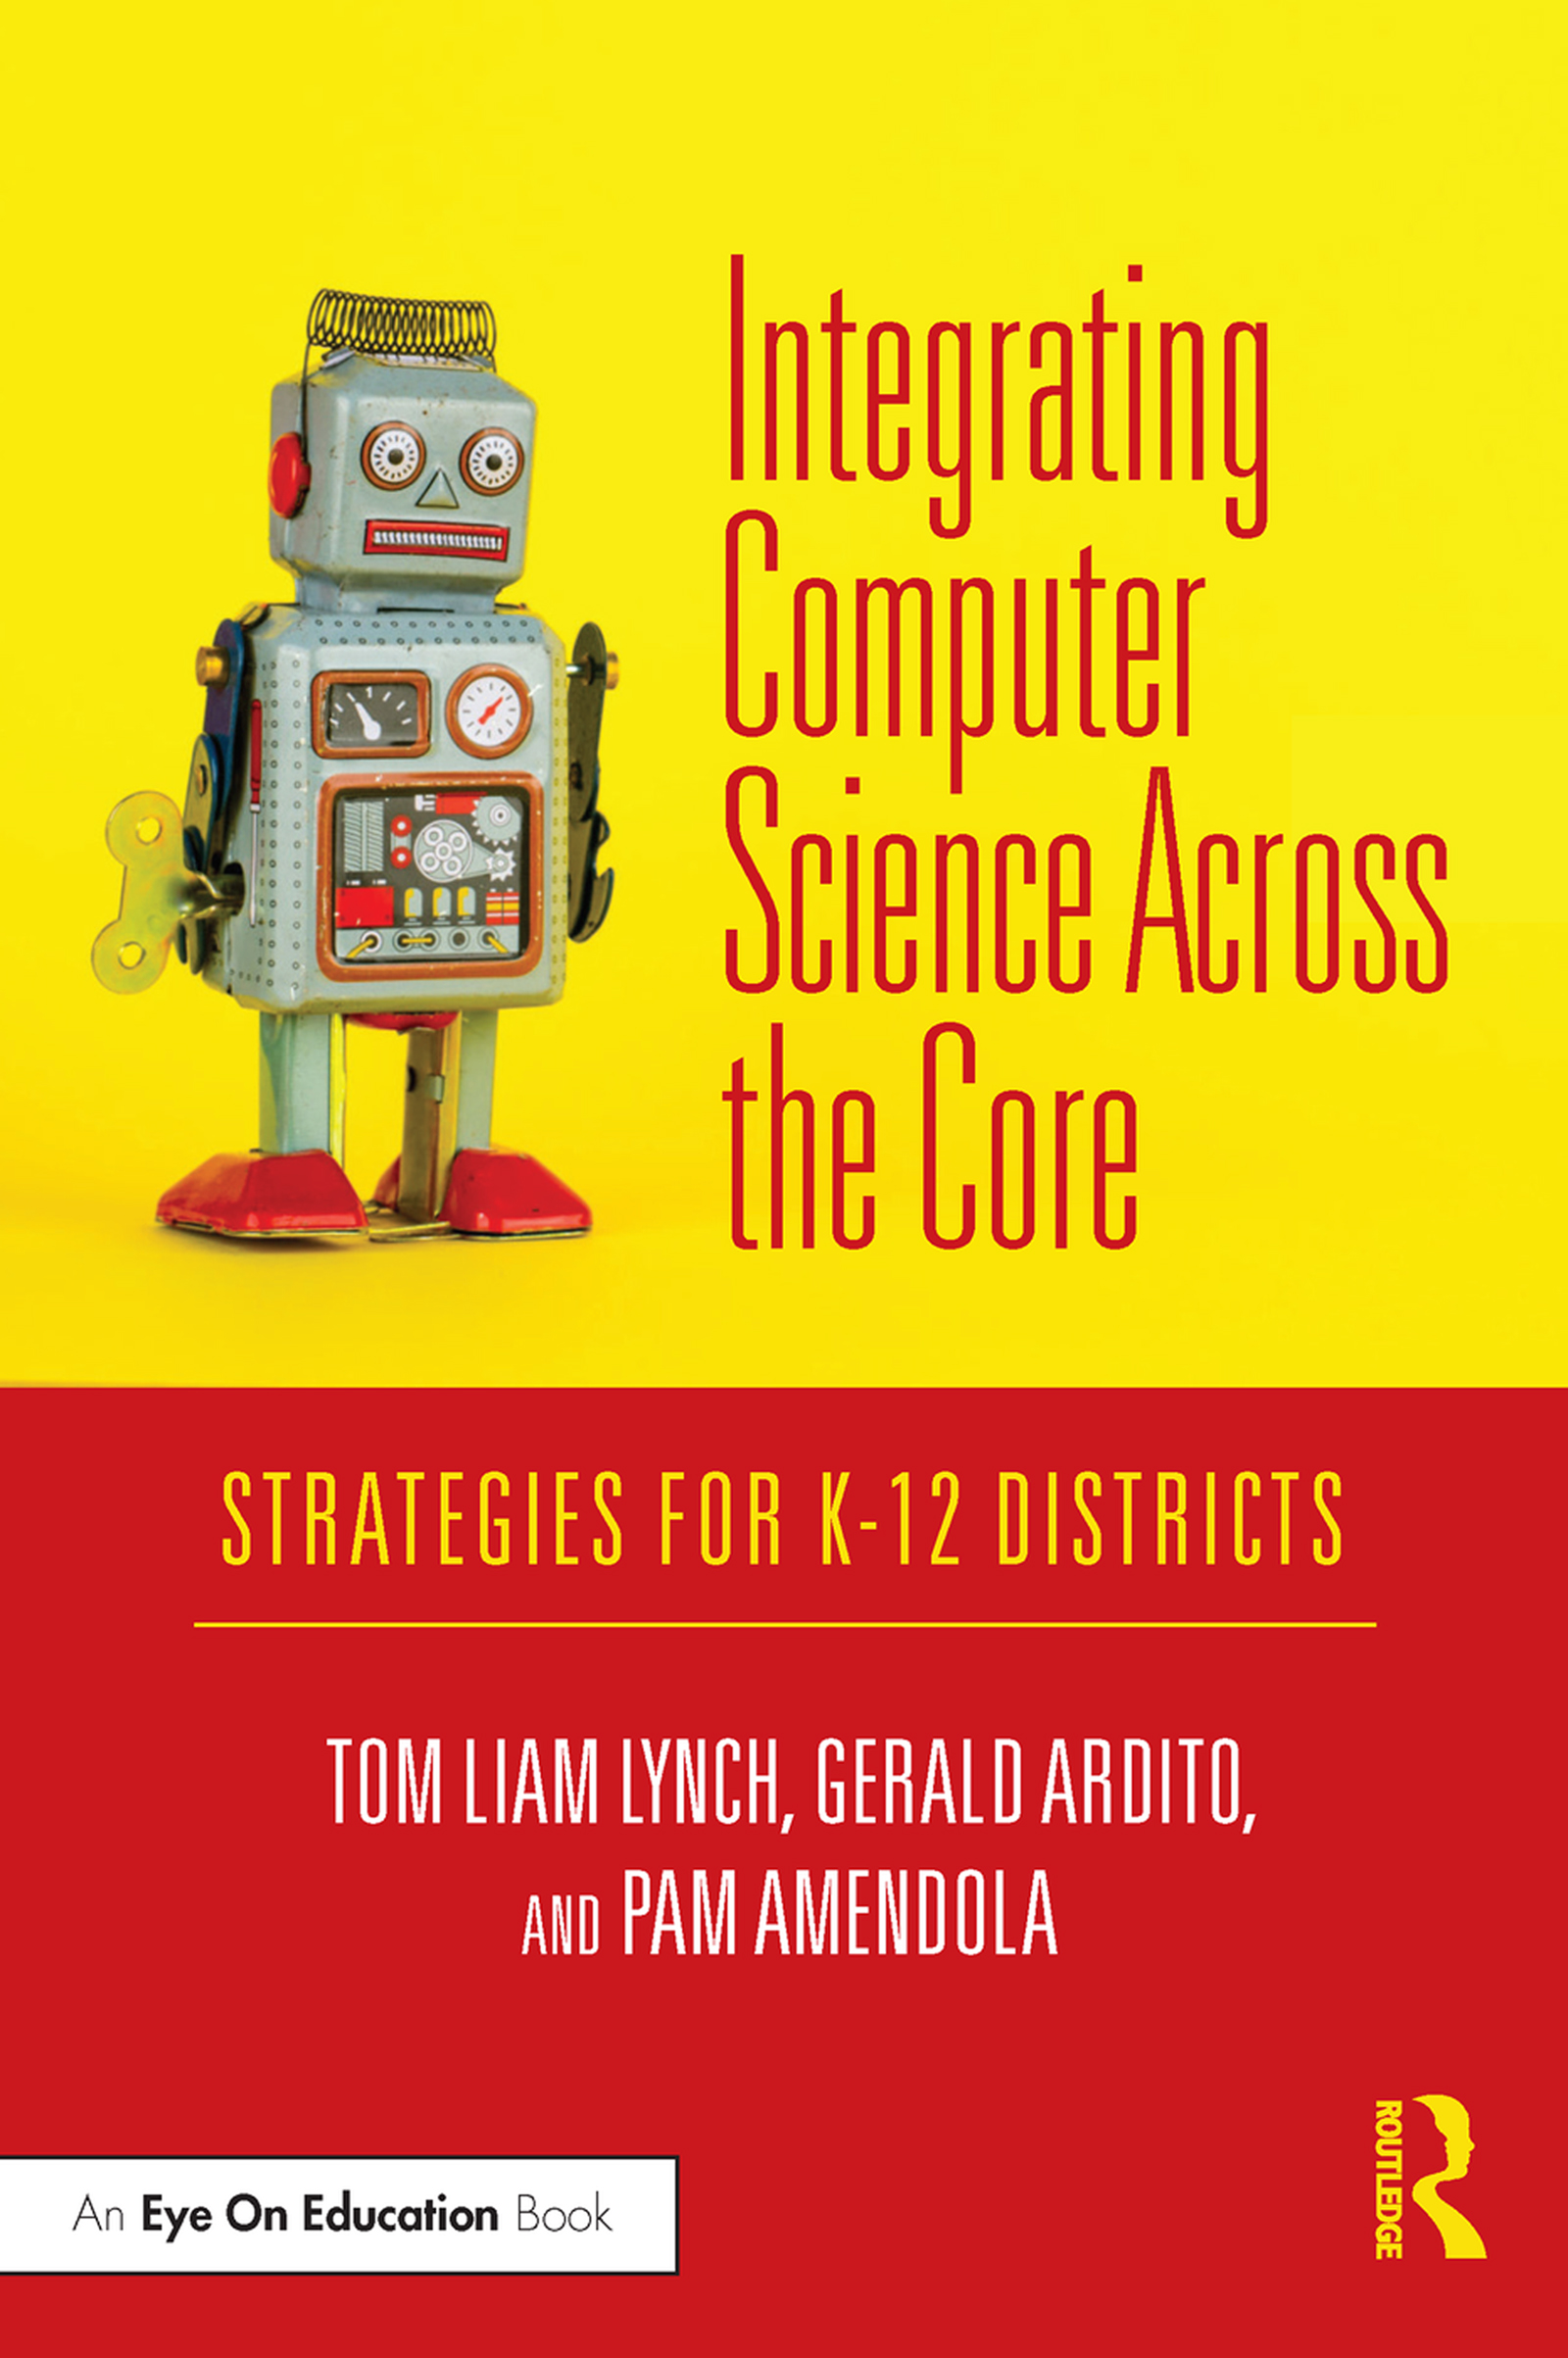 Integrating Computer Science Across the Core: Strategies for K-12 Districts book cover